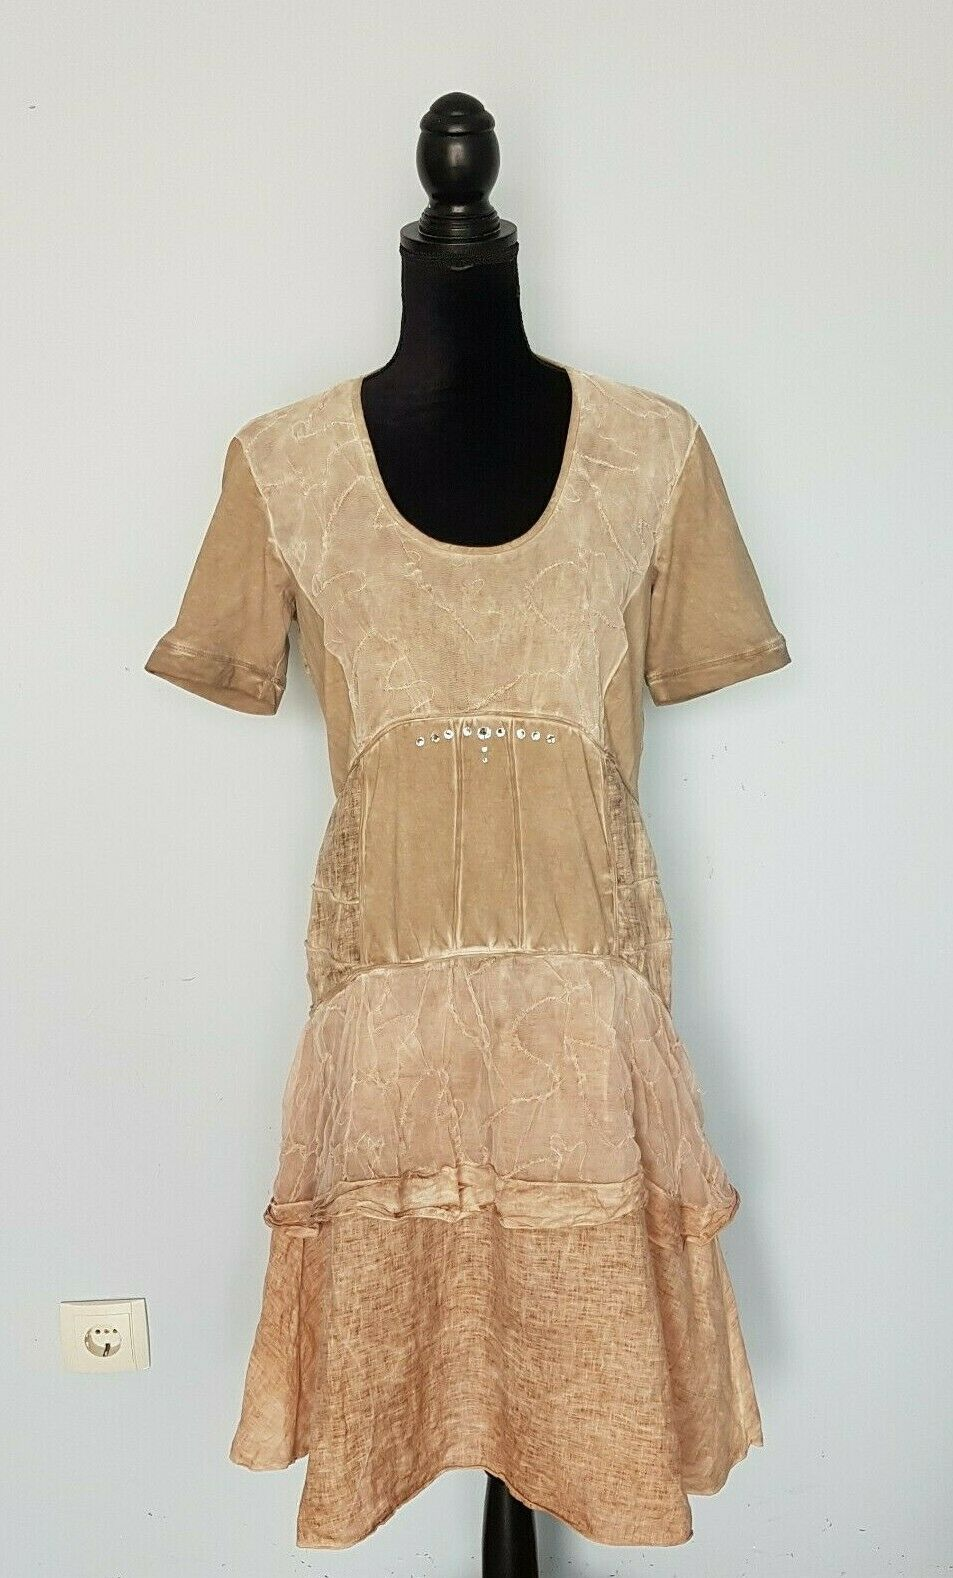 ELISA CAVALETTI Beige Linen   Cotton Short Sleeves Dress Größe L